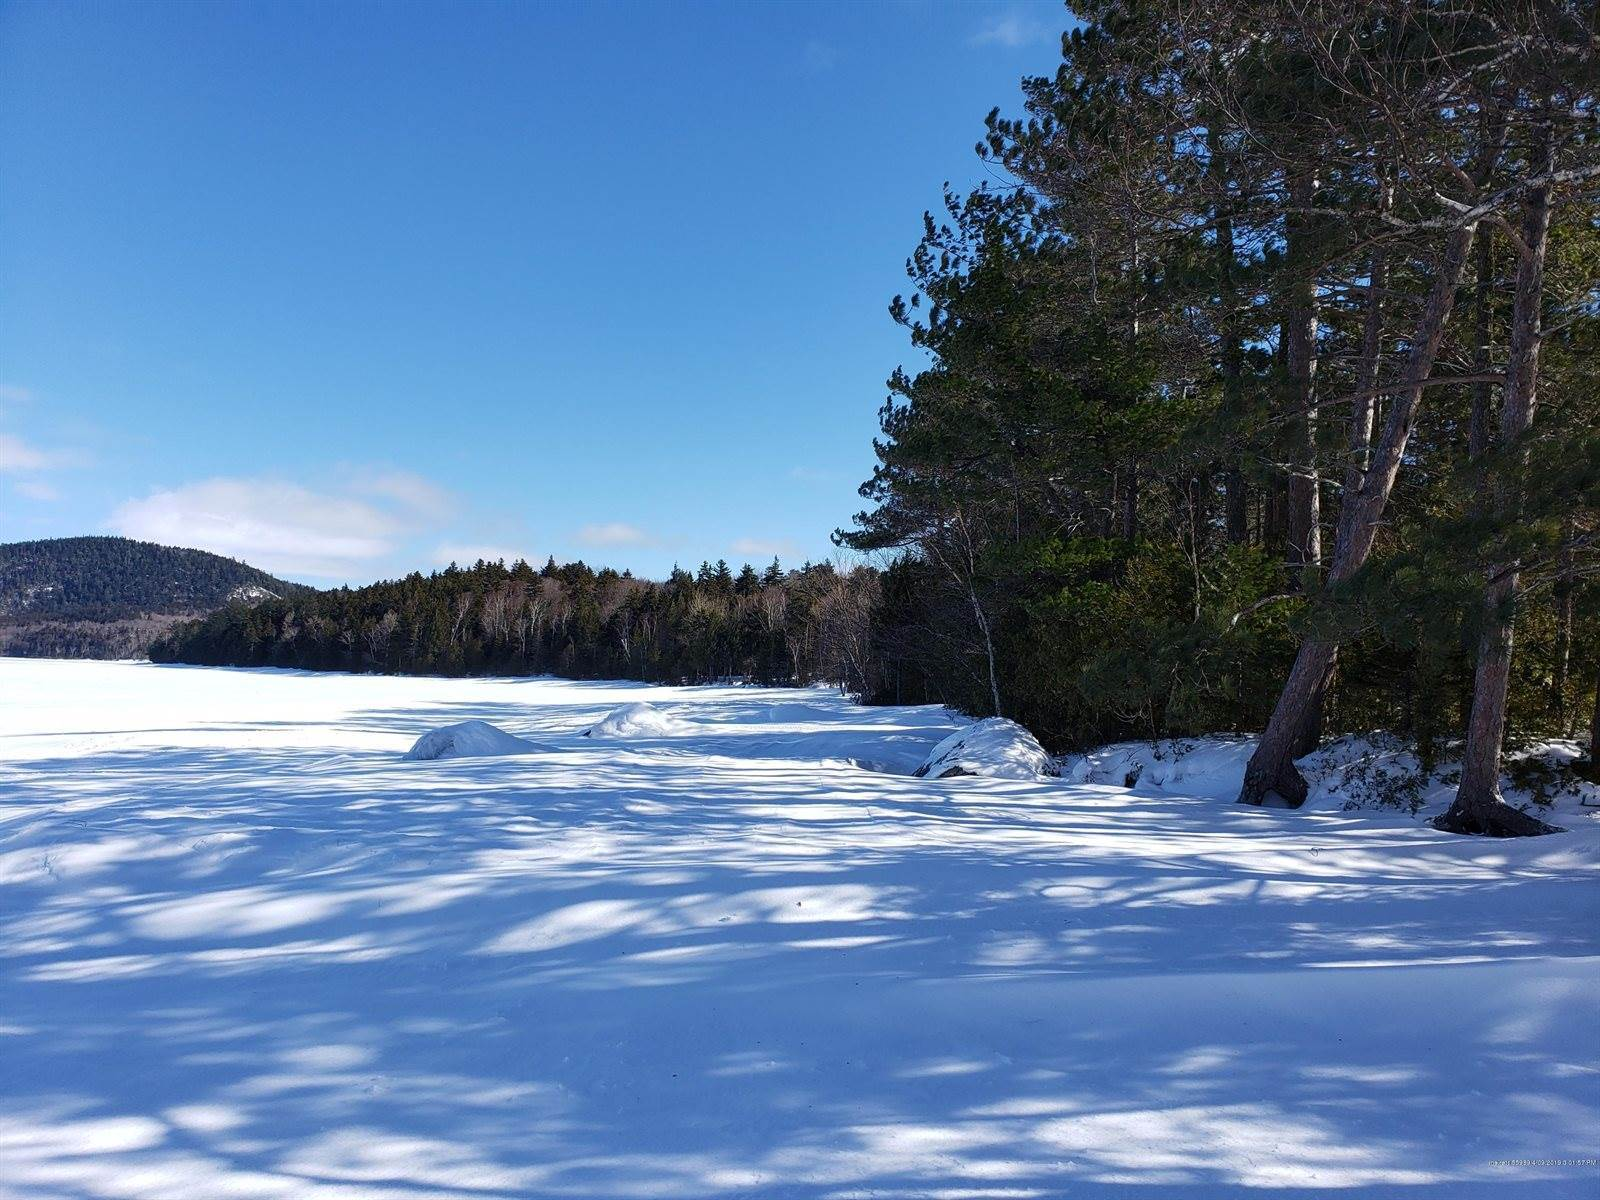 Lot 4 Pebble Beach Causeway, Days Academy Grant Township, ME 04441